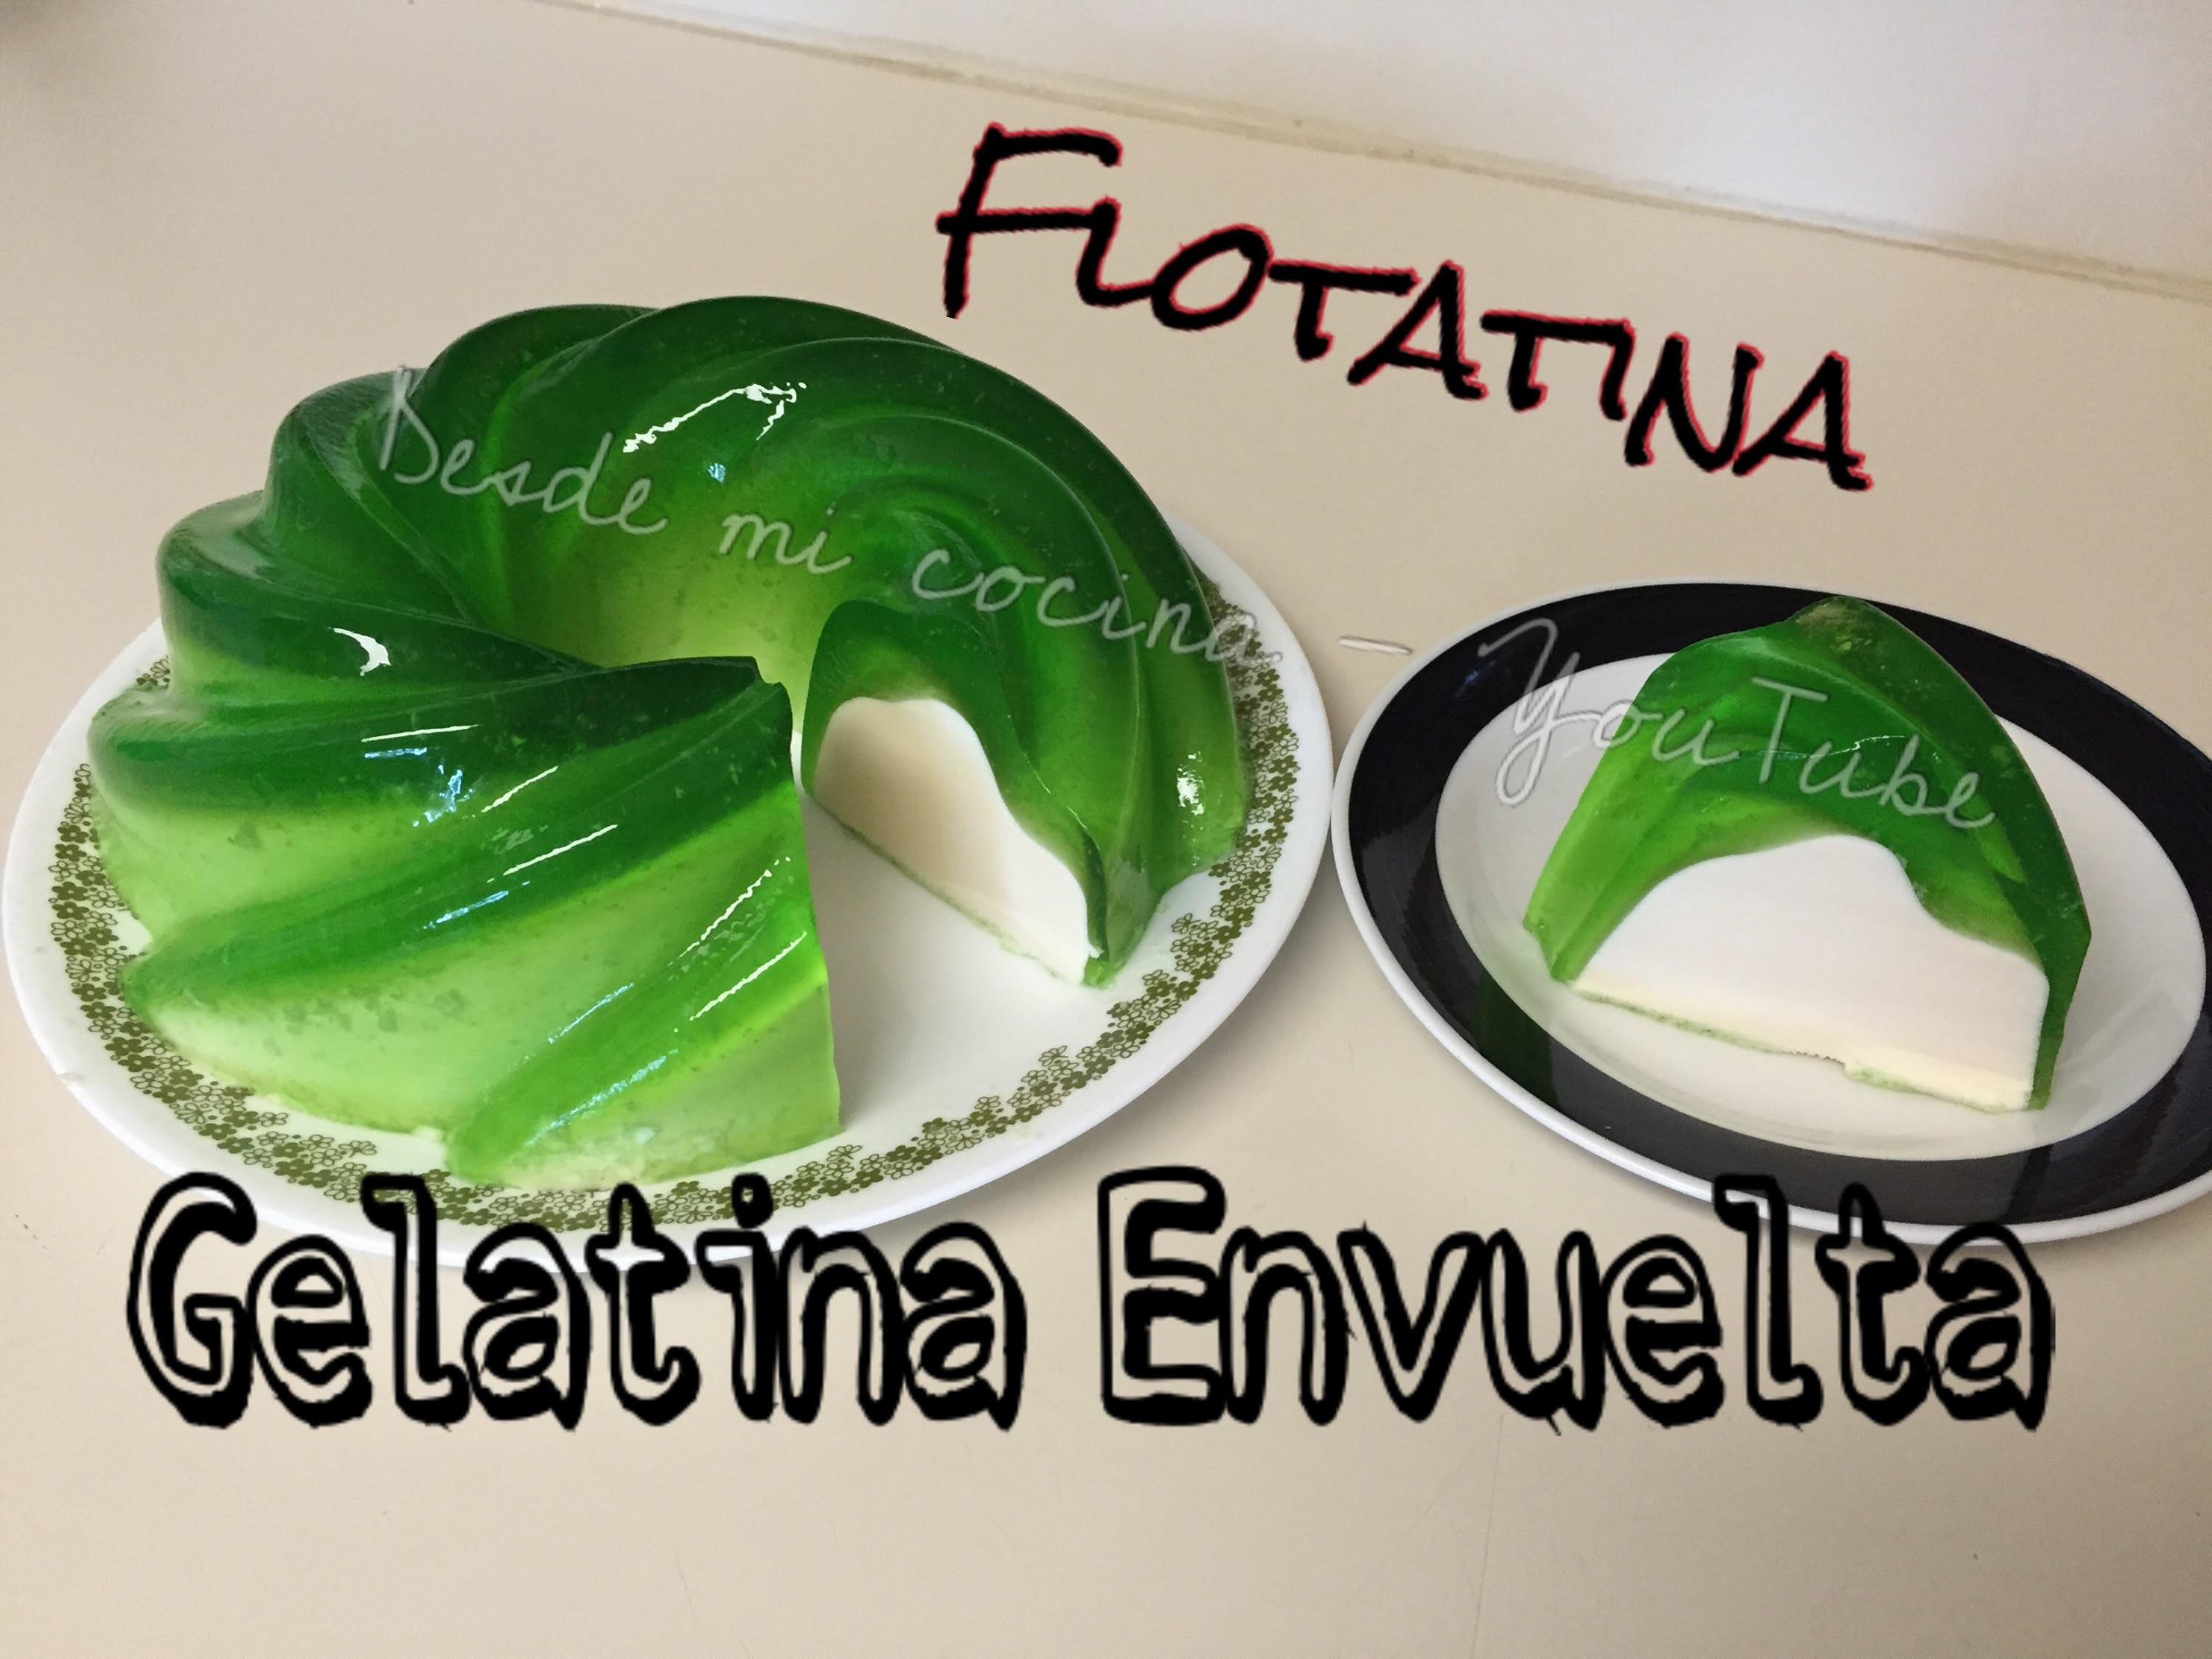 Gelatina Envuelta - Flotatina. Wrapped Gelatin. Easy-to-do. Facil de hacer